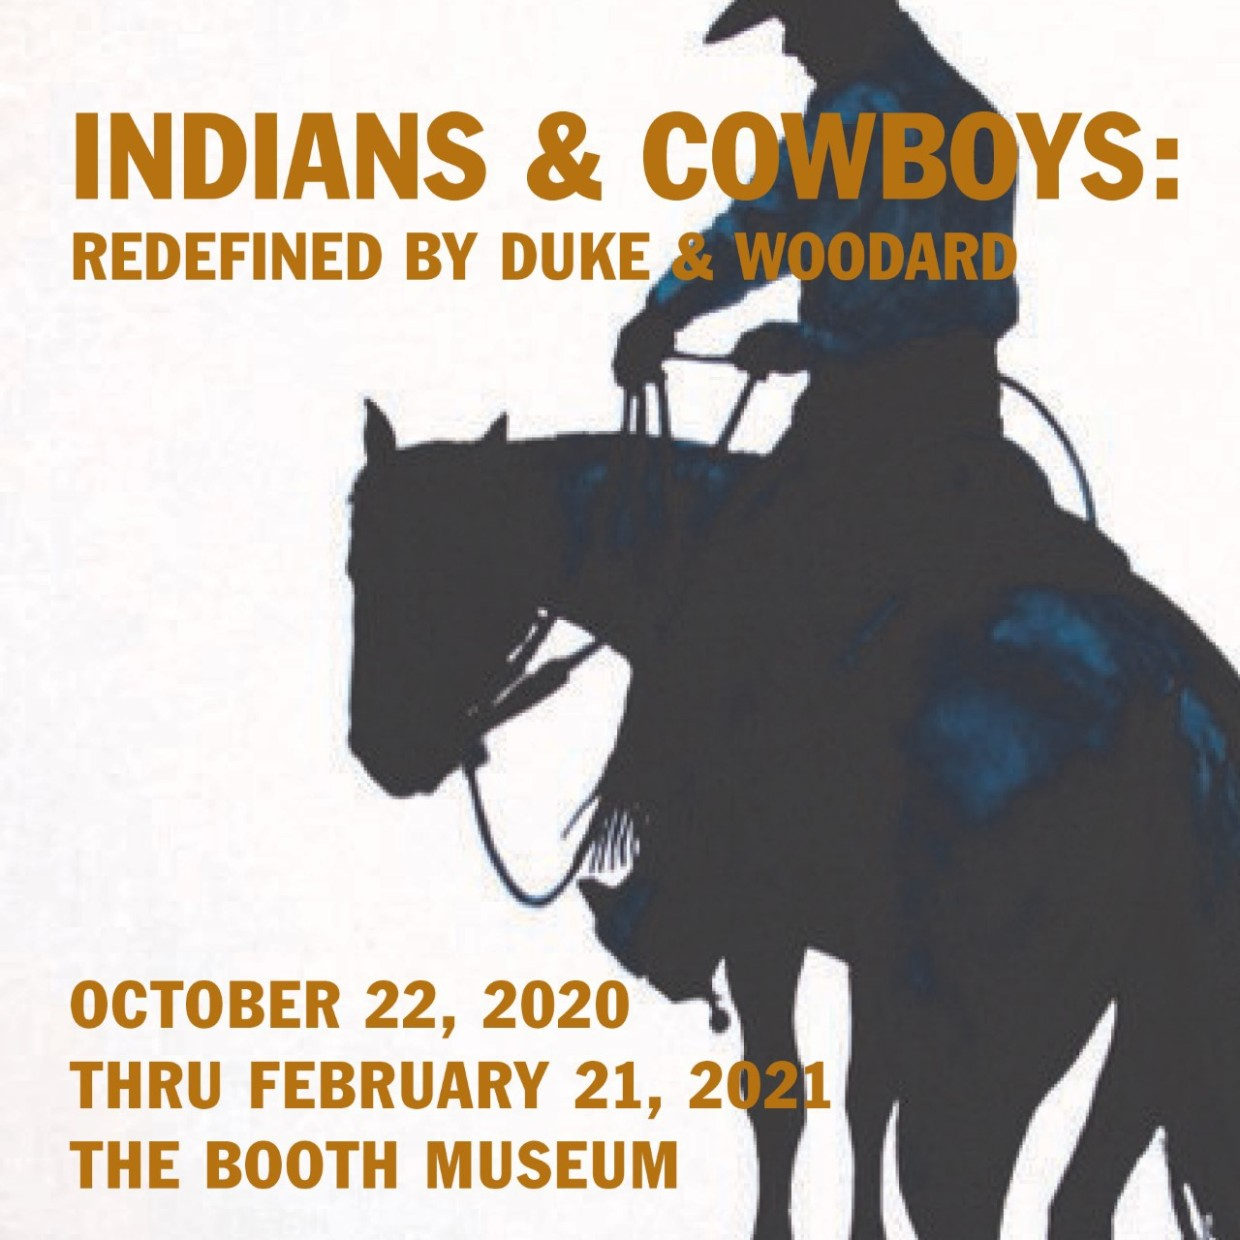 Indians & Cowboys: Redefined by Duke & Woodard